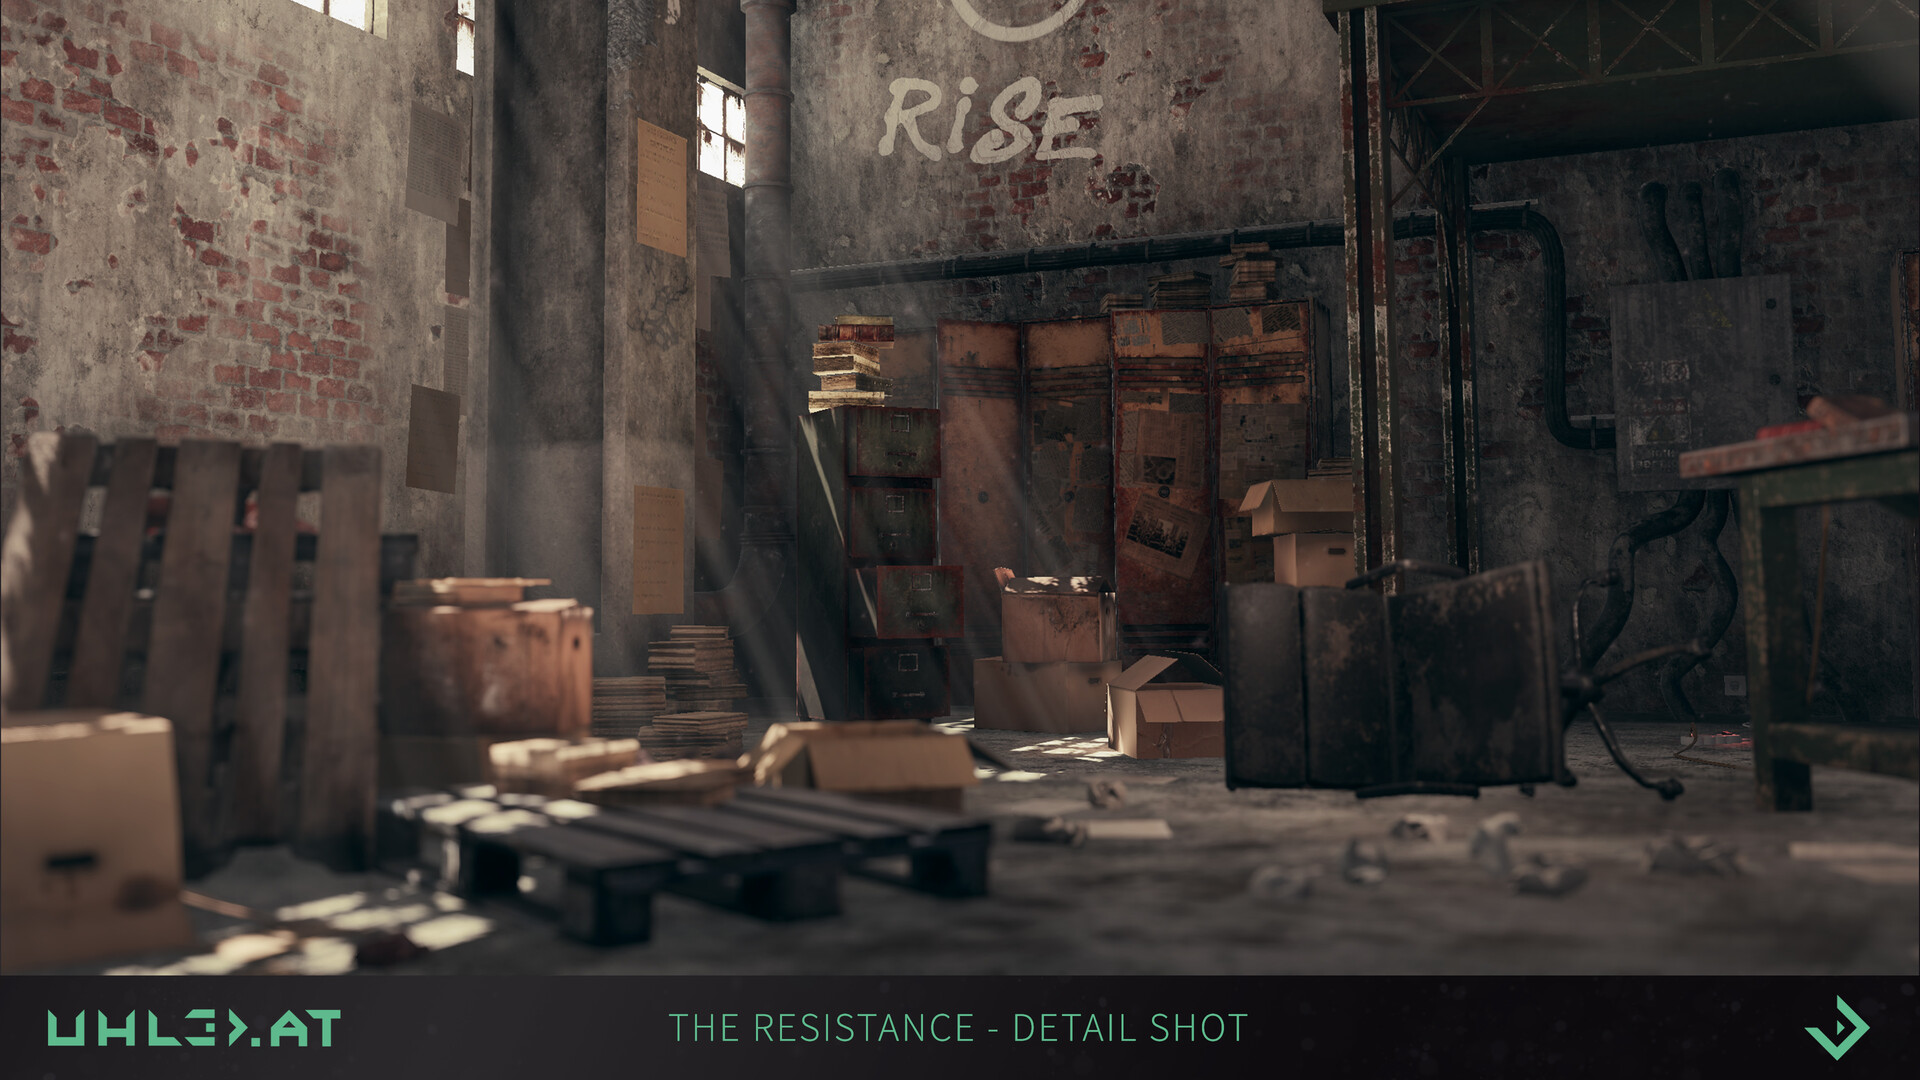 Dominik uhl the resistance detailshot 05